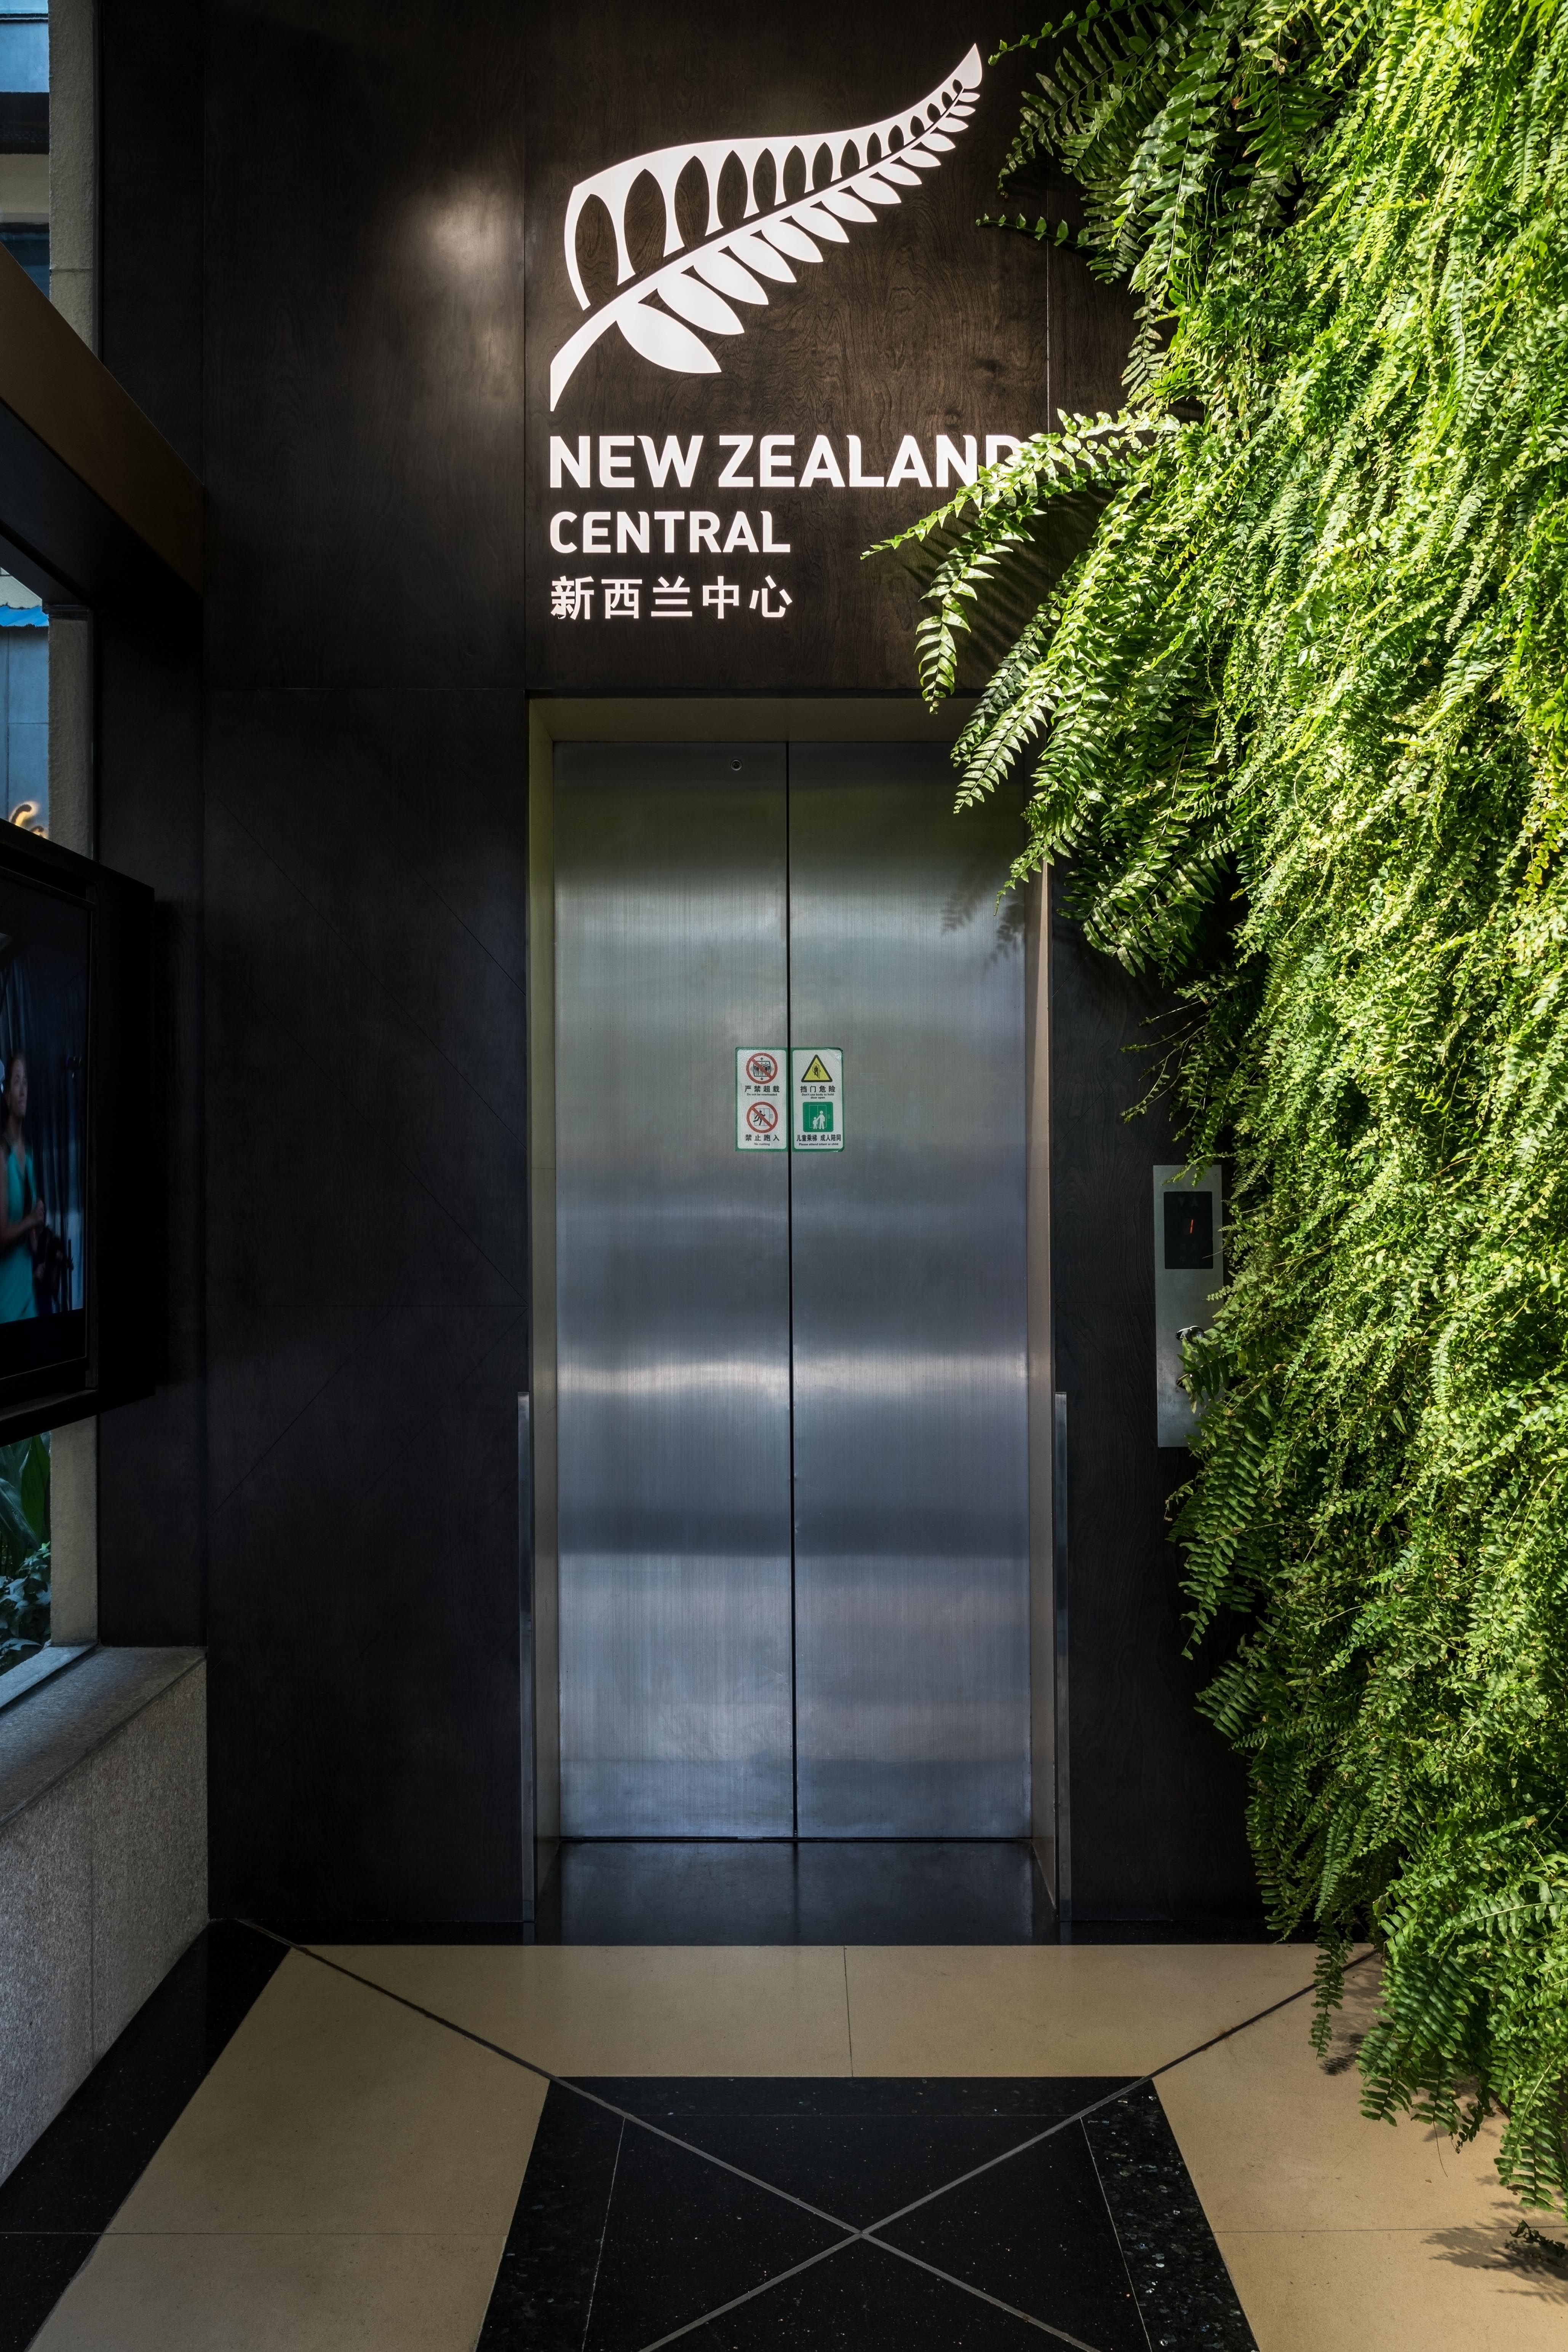 New Zealand Central by hcreates